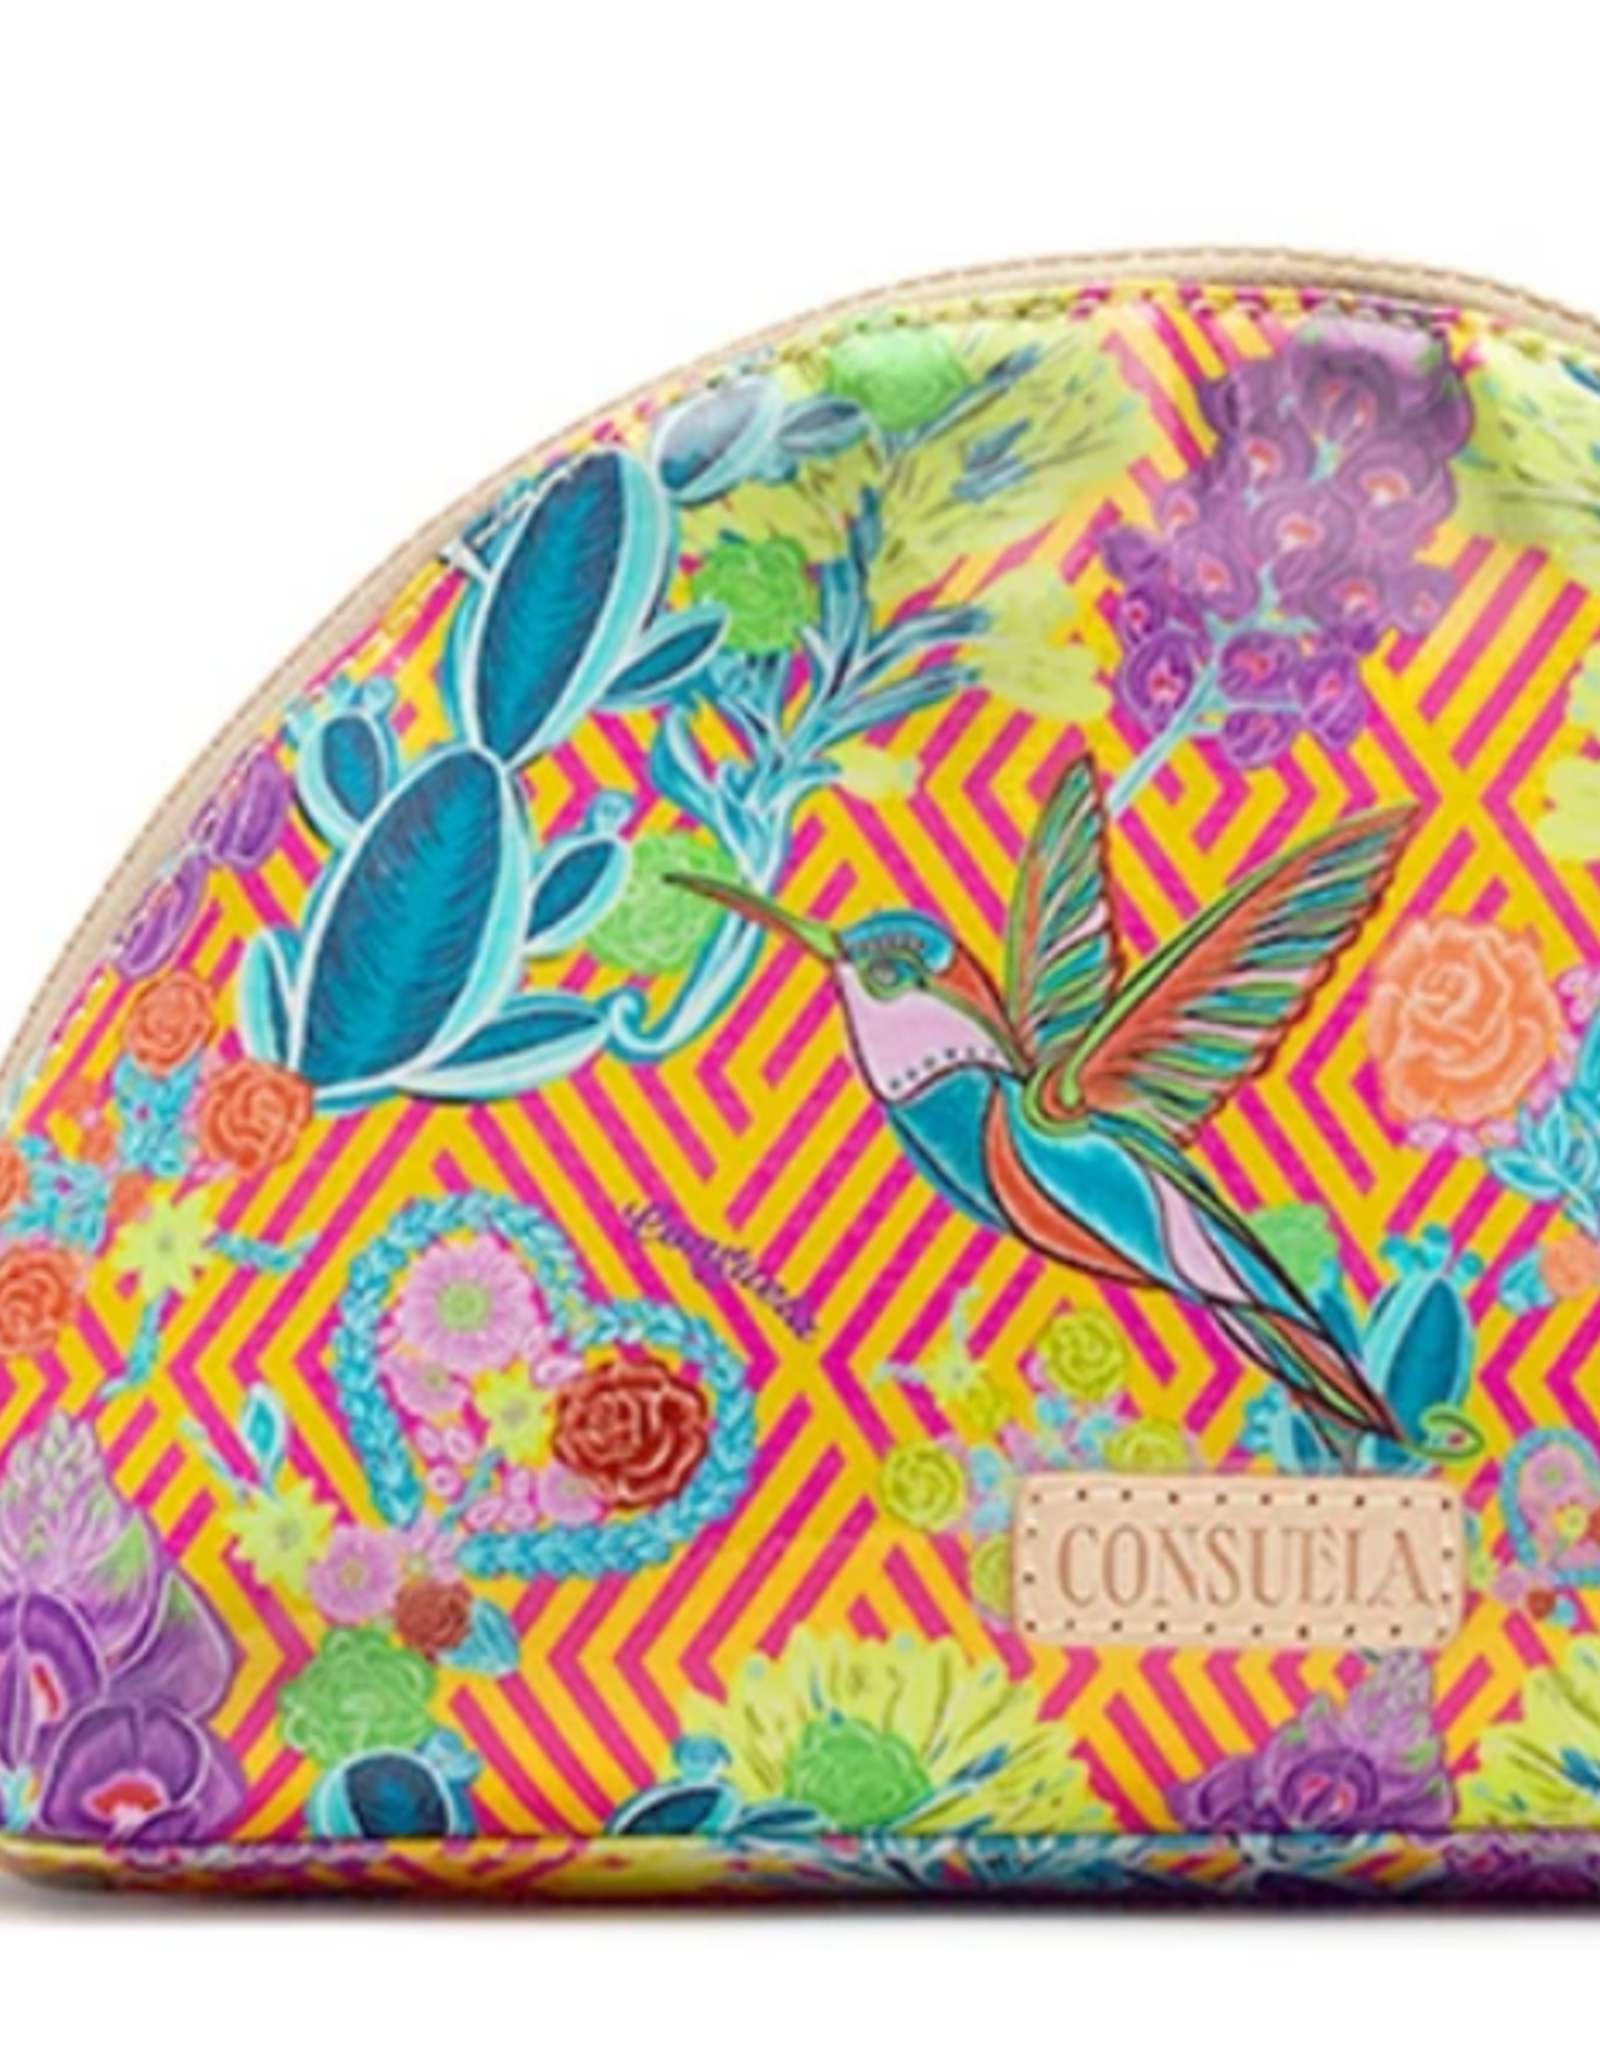 Consuela Busy Large Cosmetic Case